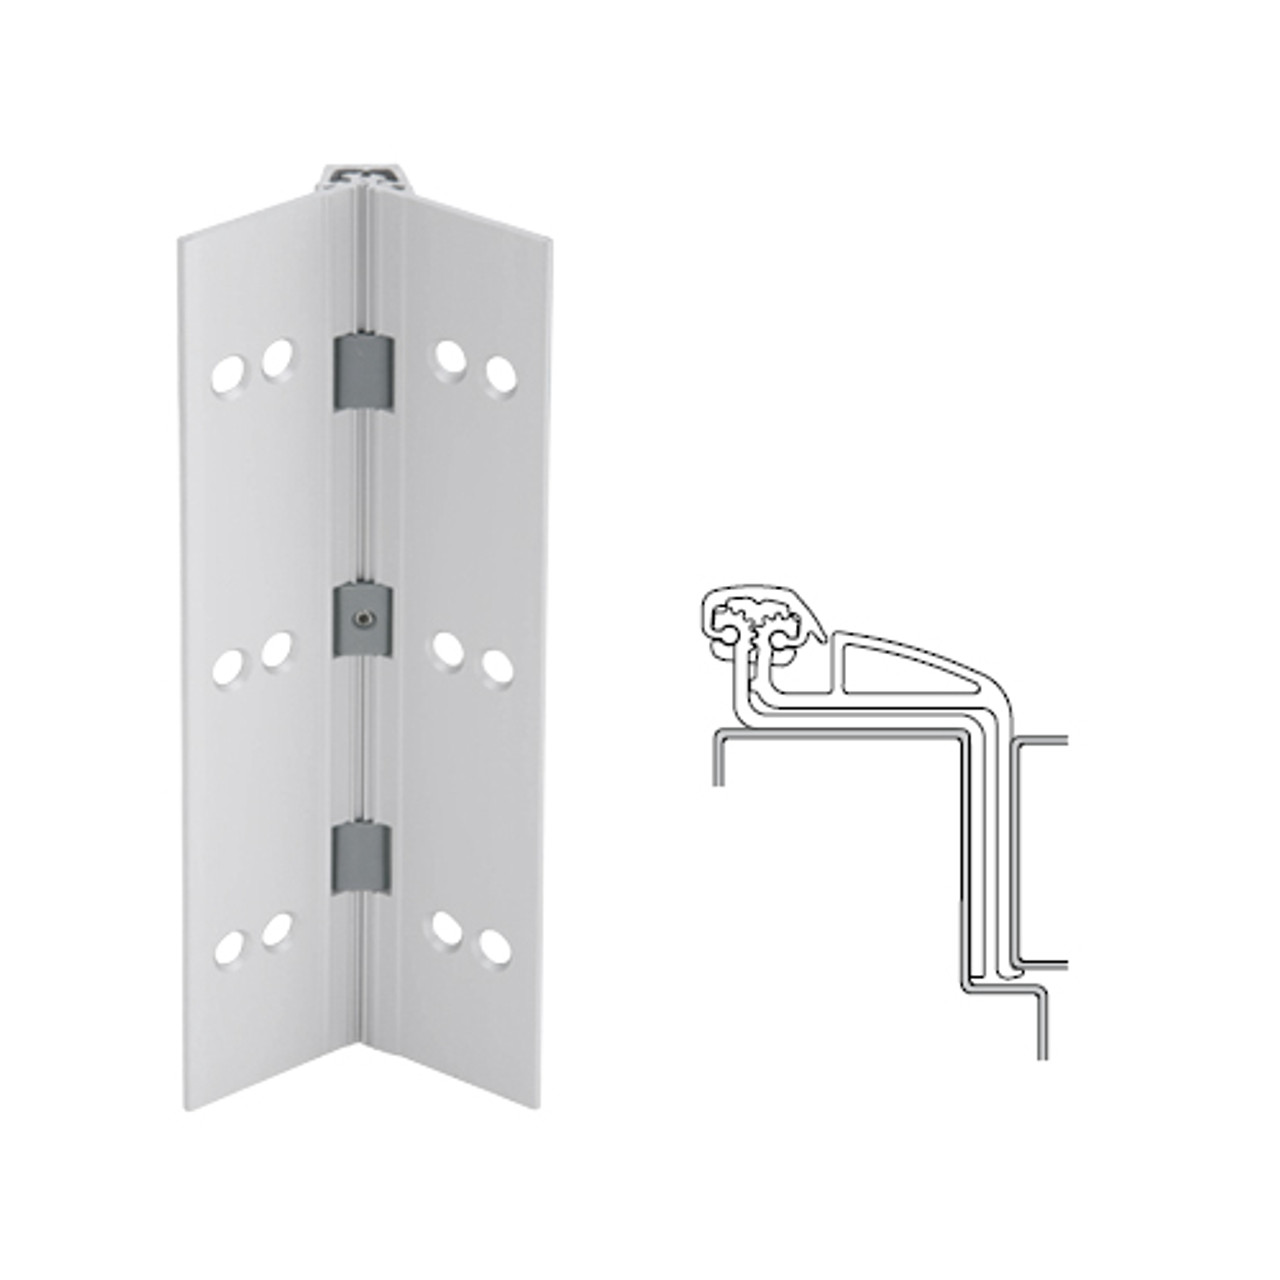 041XY-US28-95-SECWDHM IVES Full Mortise Continuous Geared Hinges with Security Screws - Hex Pin Drive in Satin Aluminum